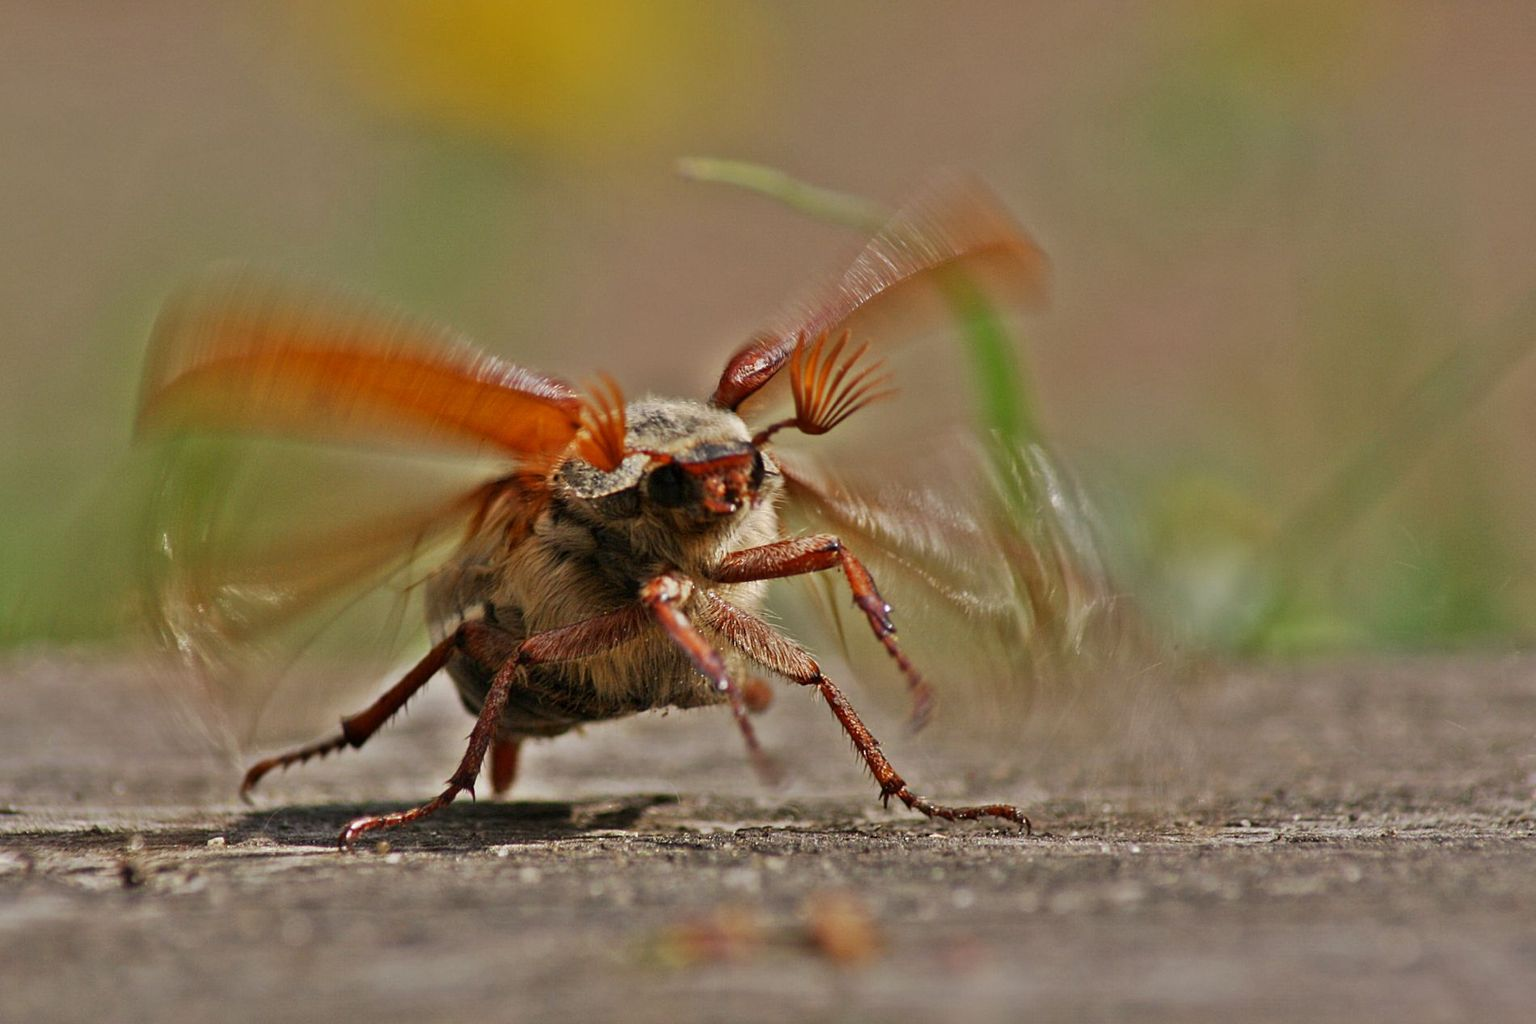 Maybug taking off